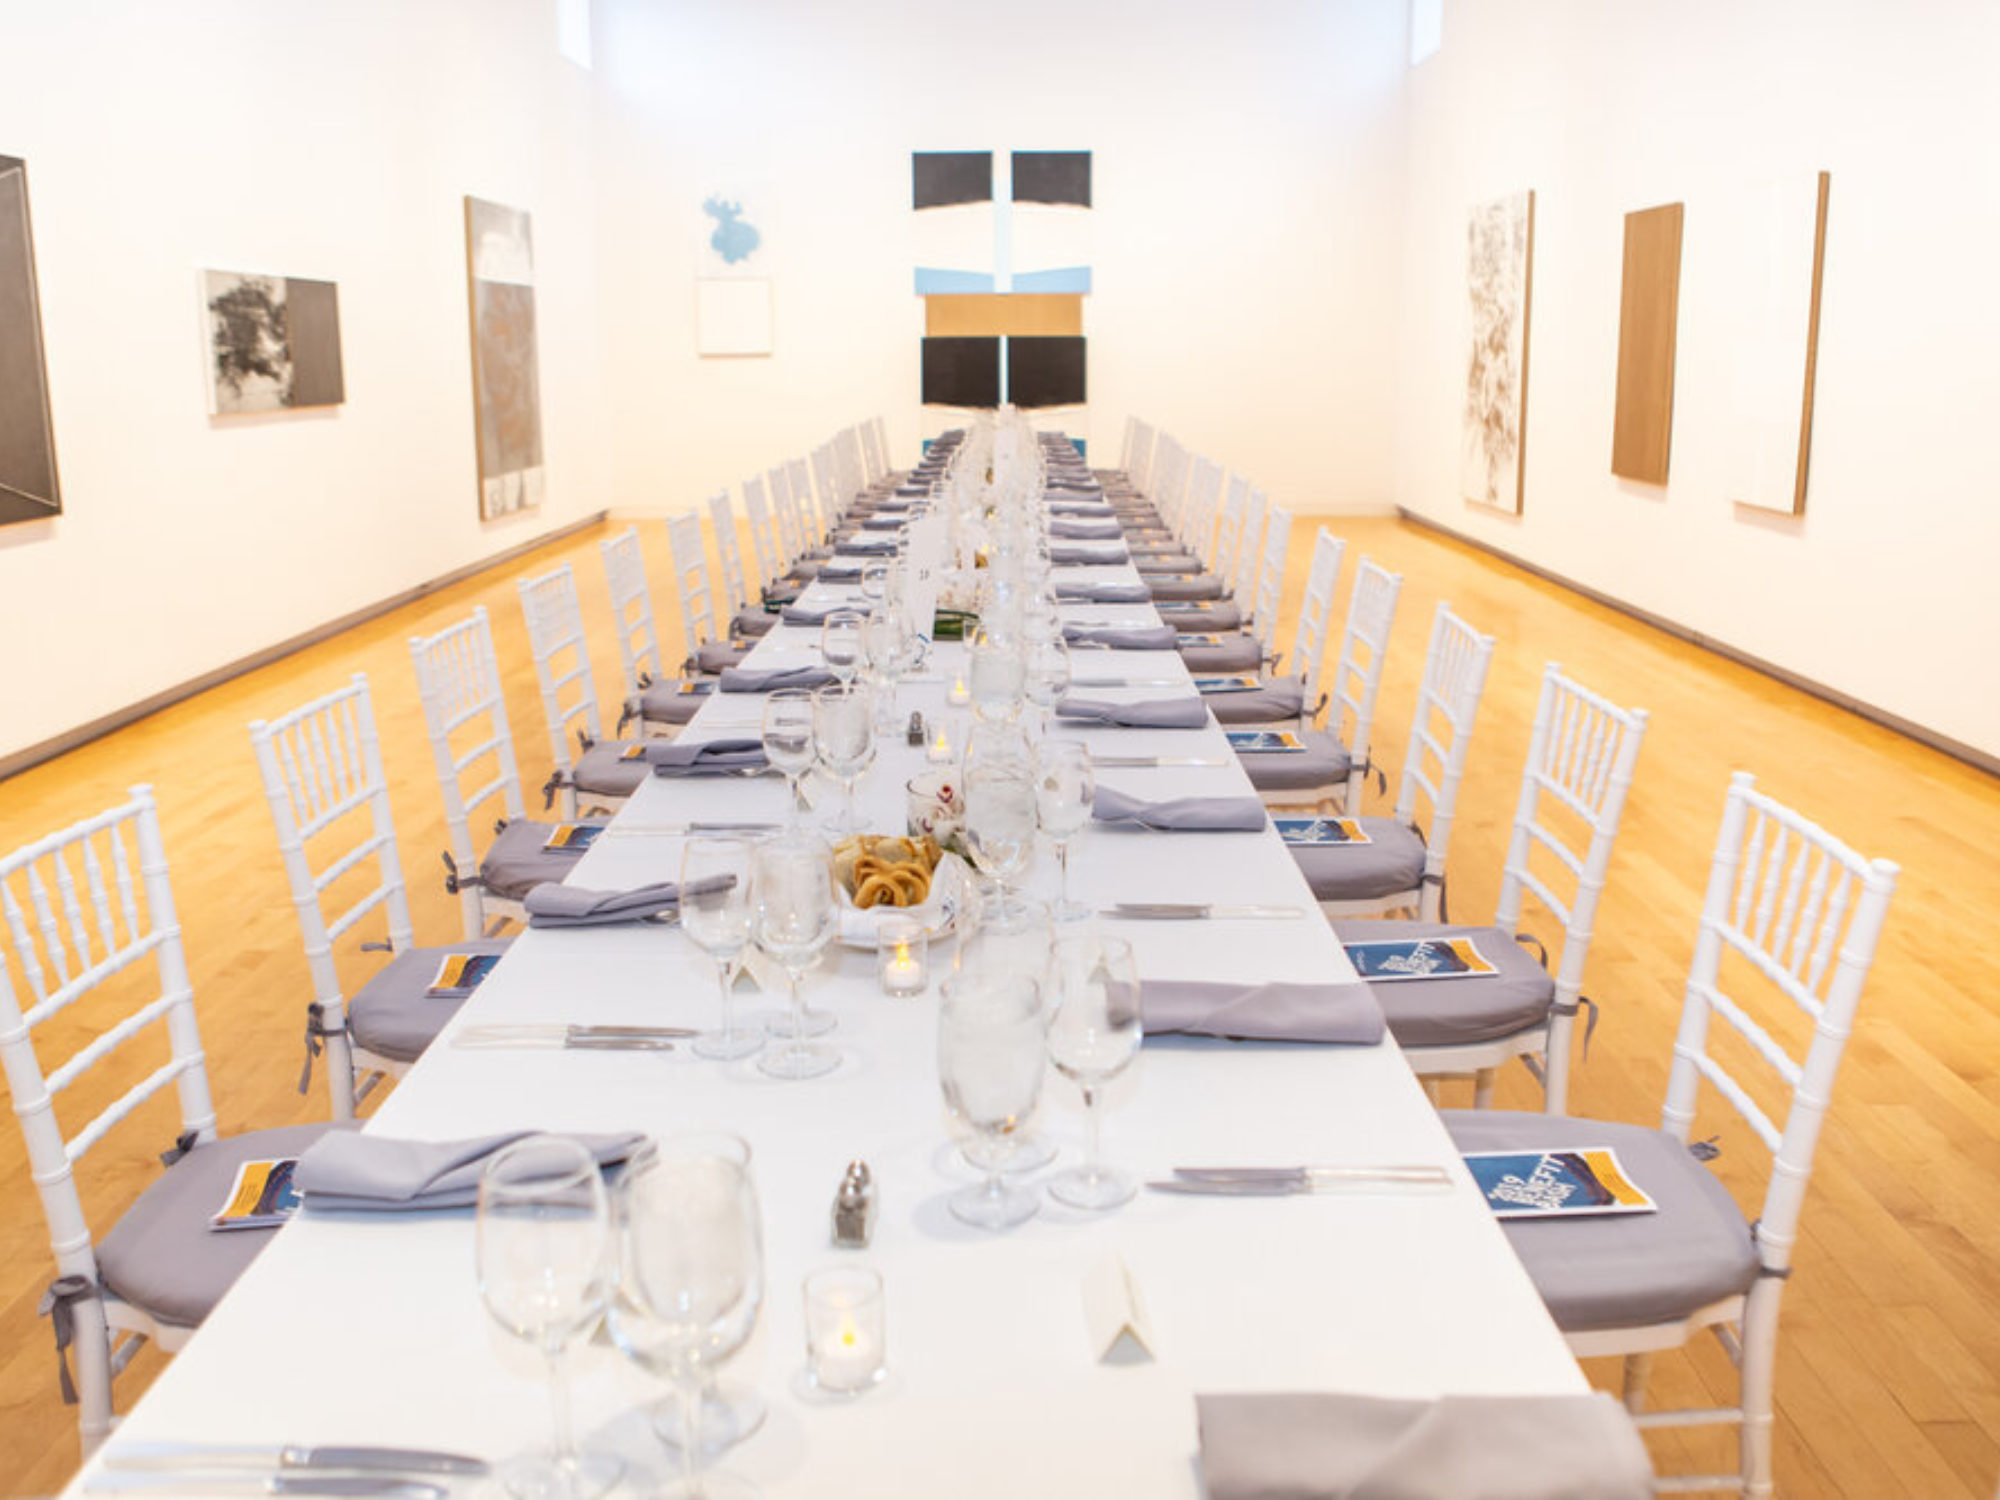 Long table set for dinner in a gallery.